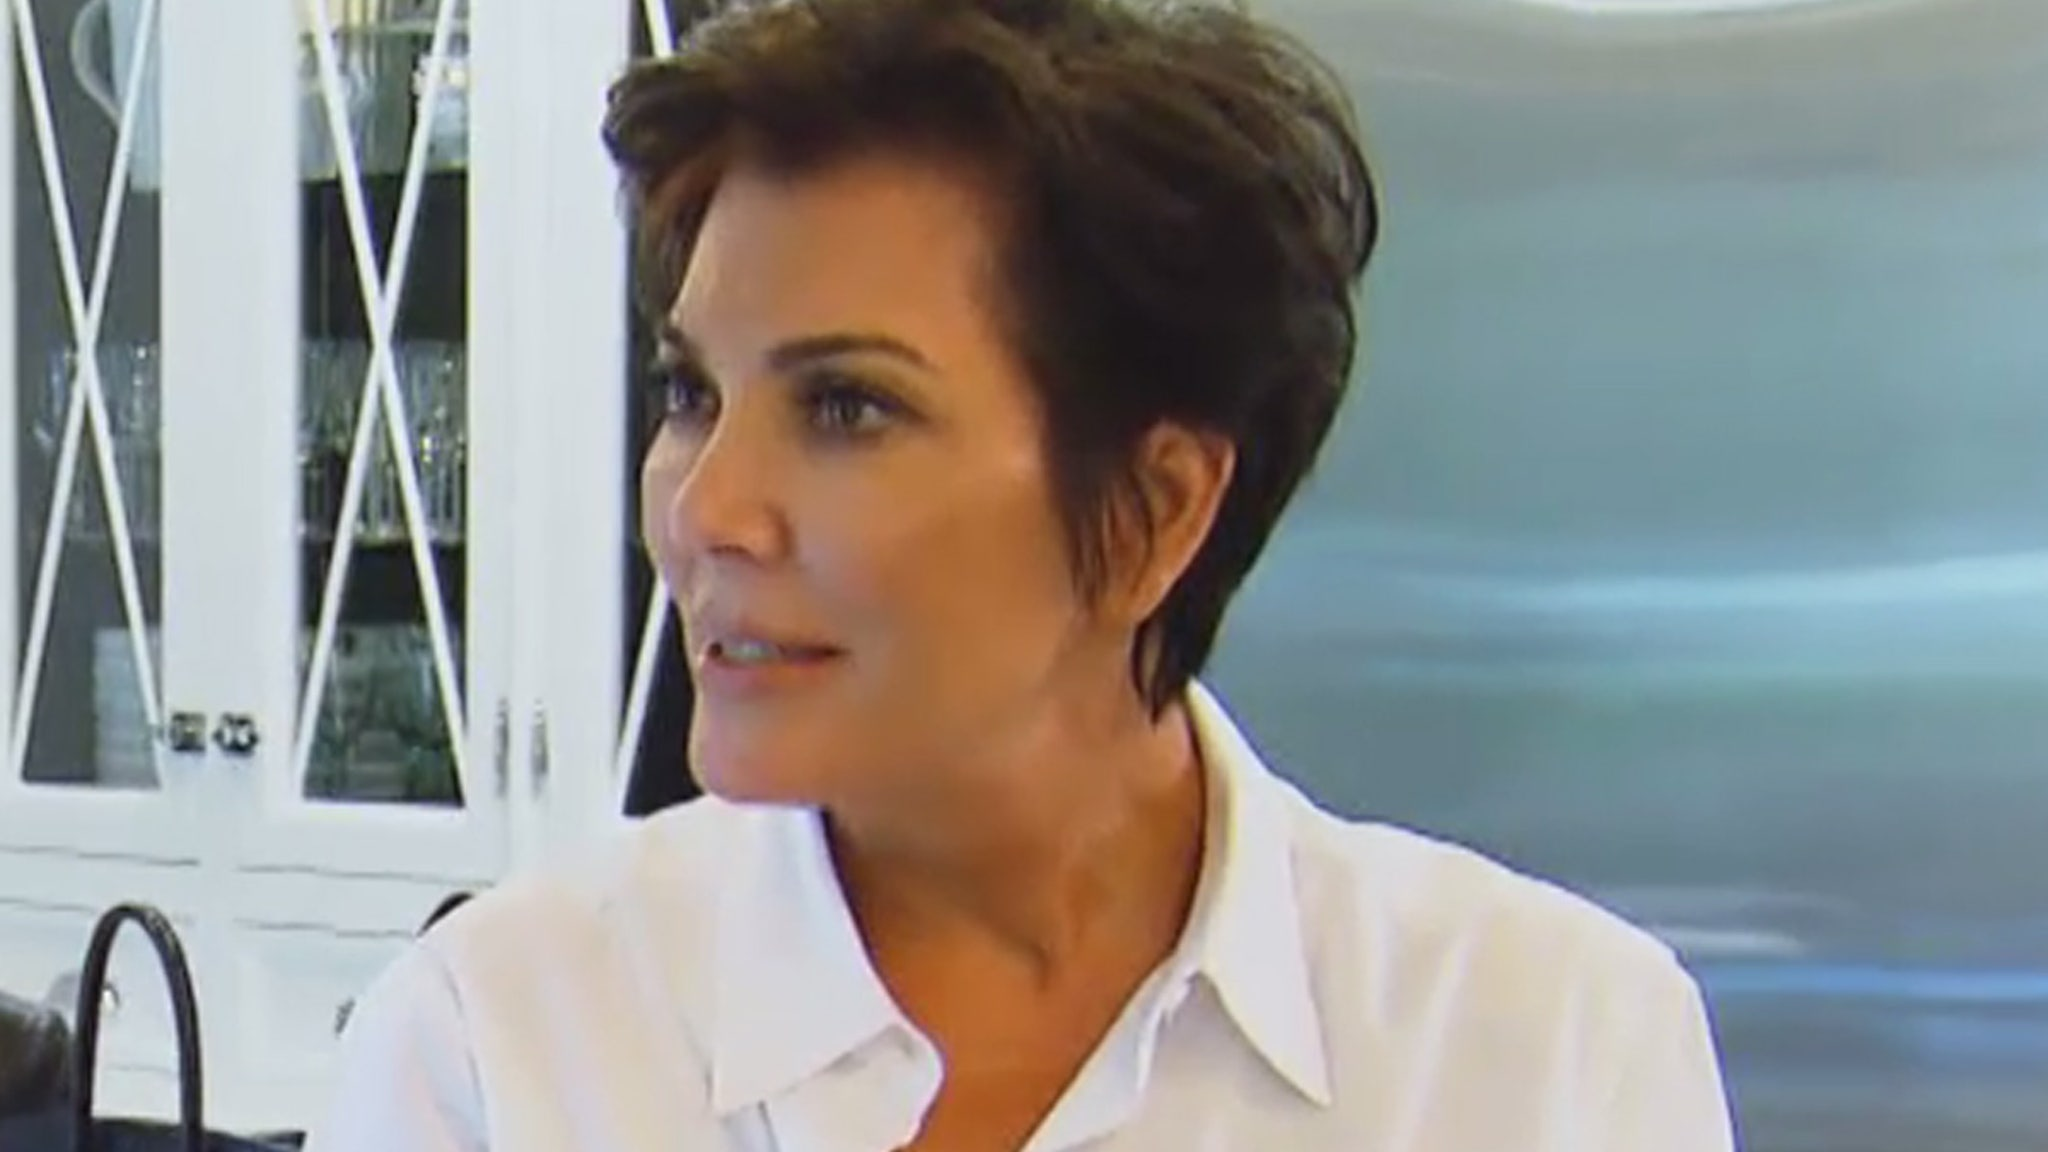 HACKED! Kris Jenner NUDE VIDEO LEAKED! | Keeping Up With